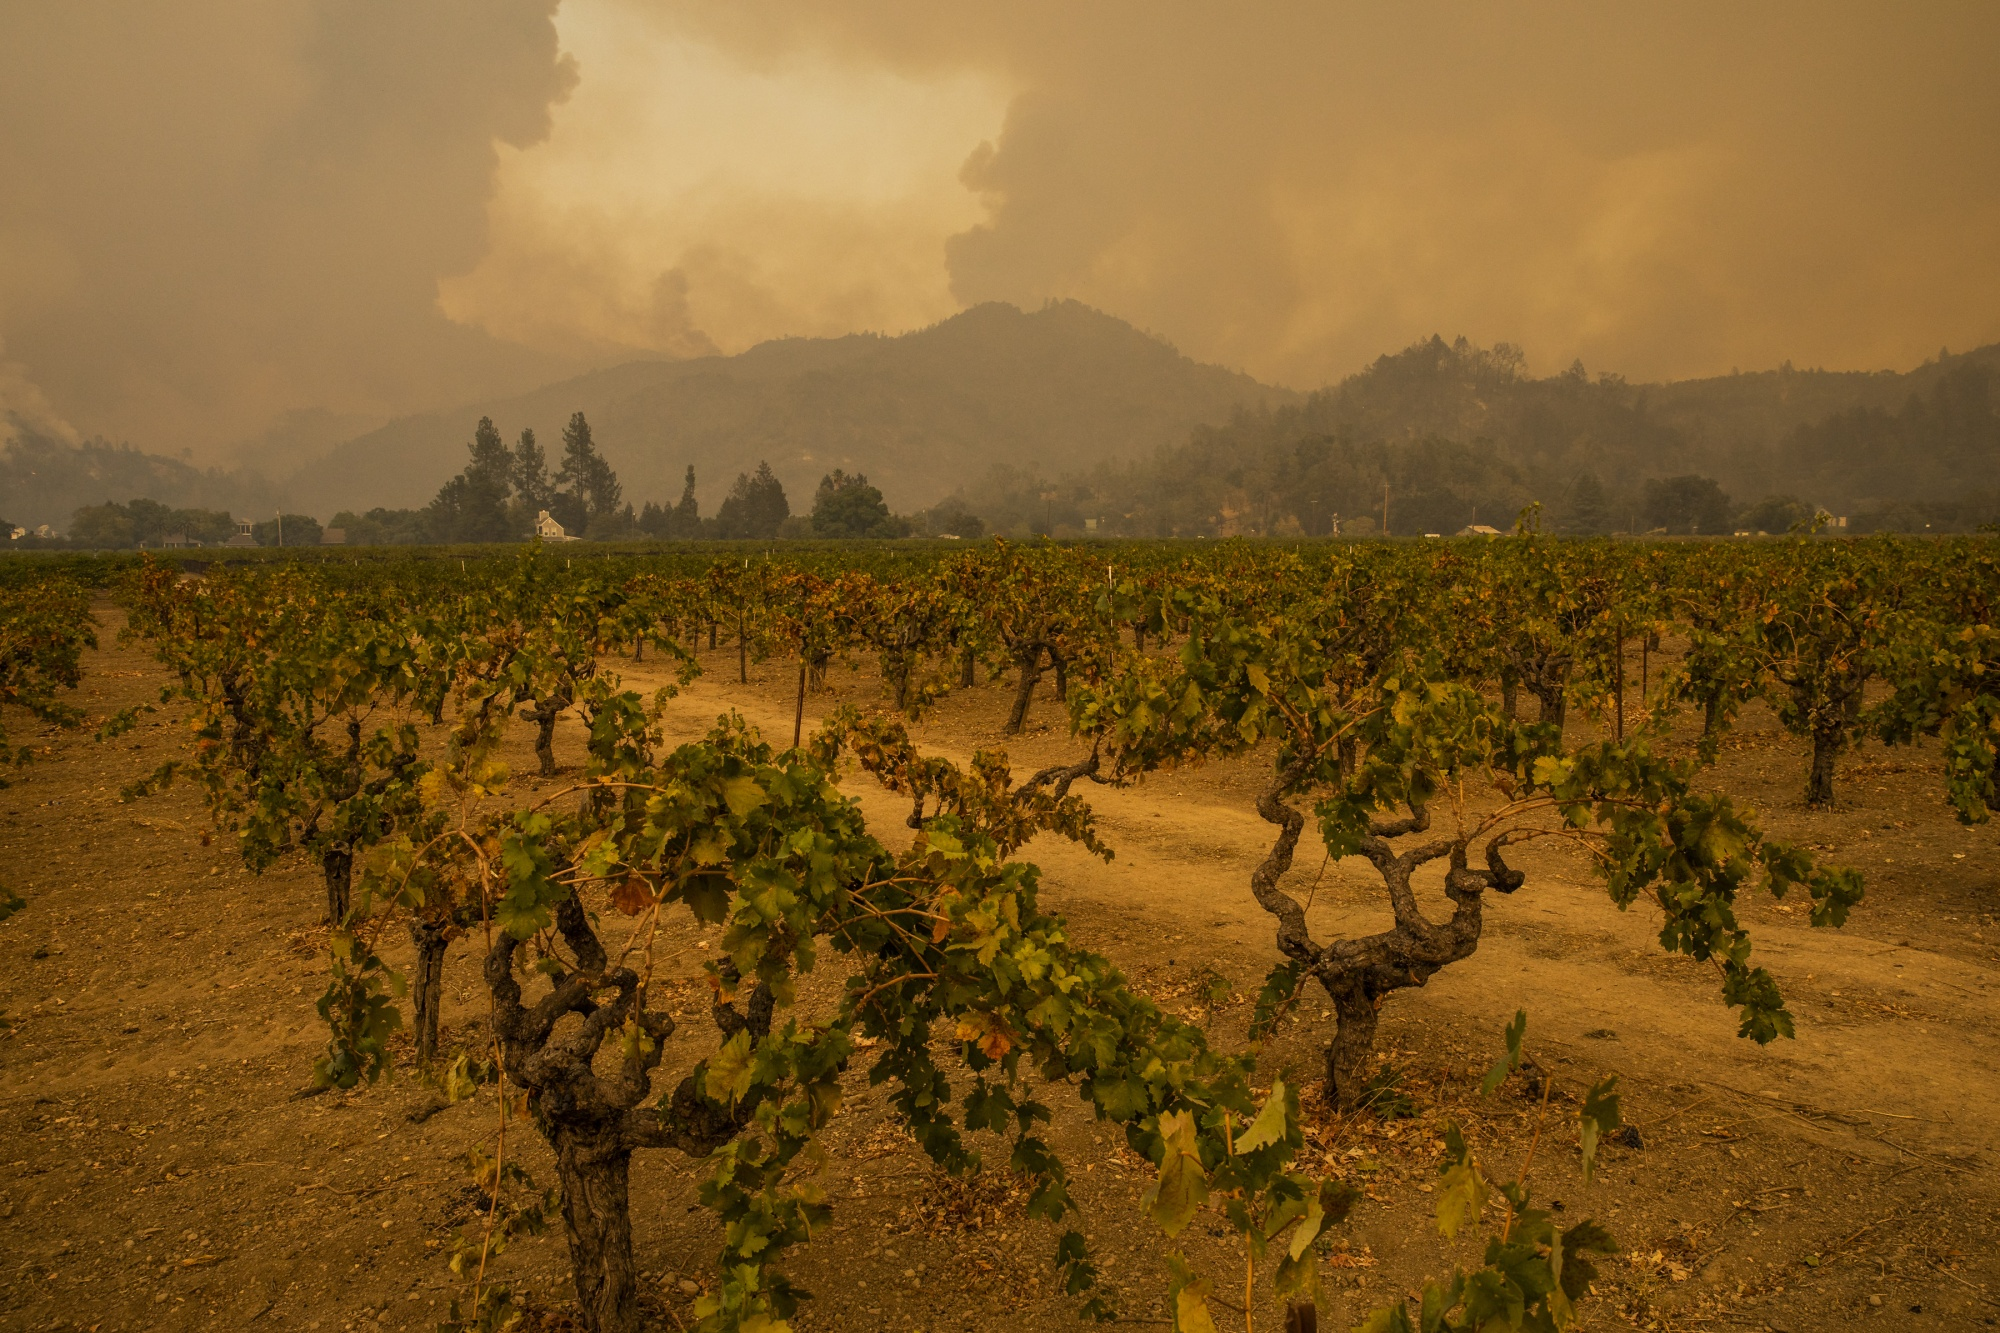 Fires Erupt in California Wine Country, Fueled By Hot, Dry Winds